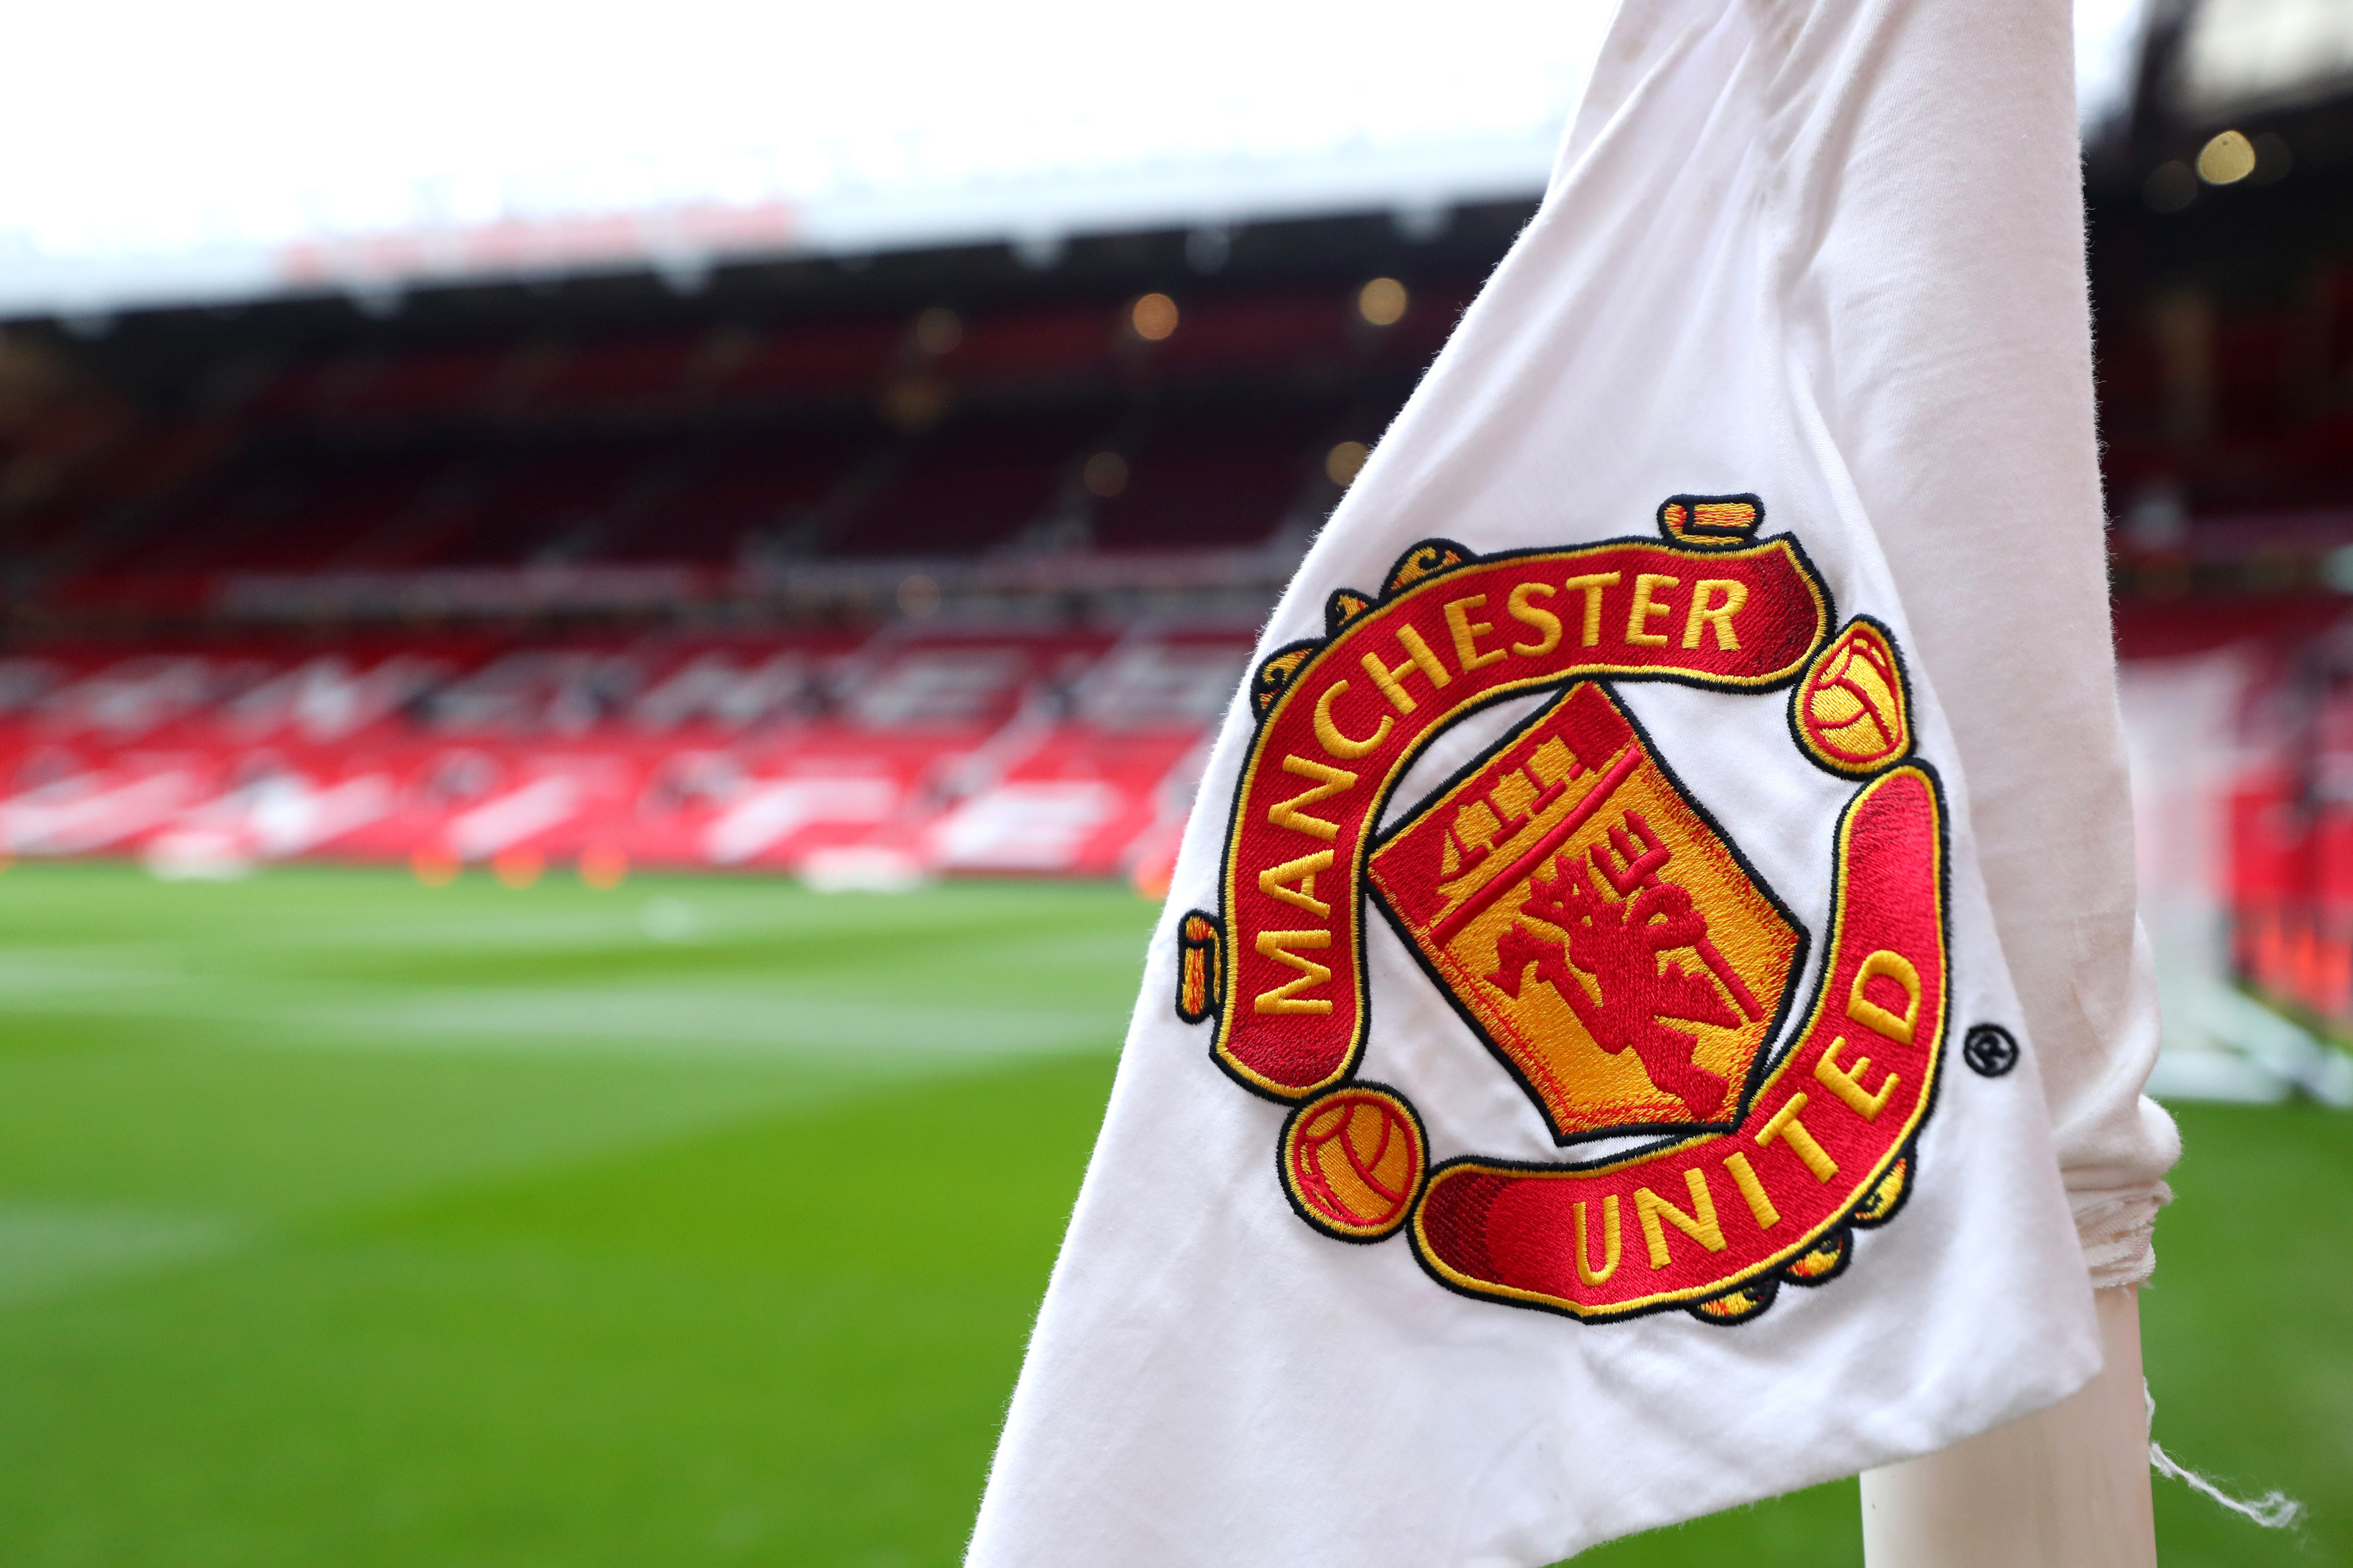 Latest manchester united news from goal.com, including transfer updates, rumours, results, scores and player interviews. Manchester United Star Drops Return Hint On Instagram